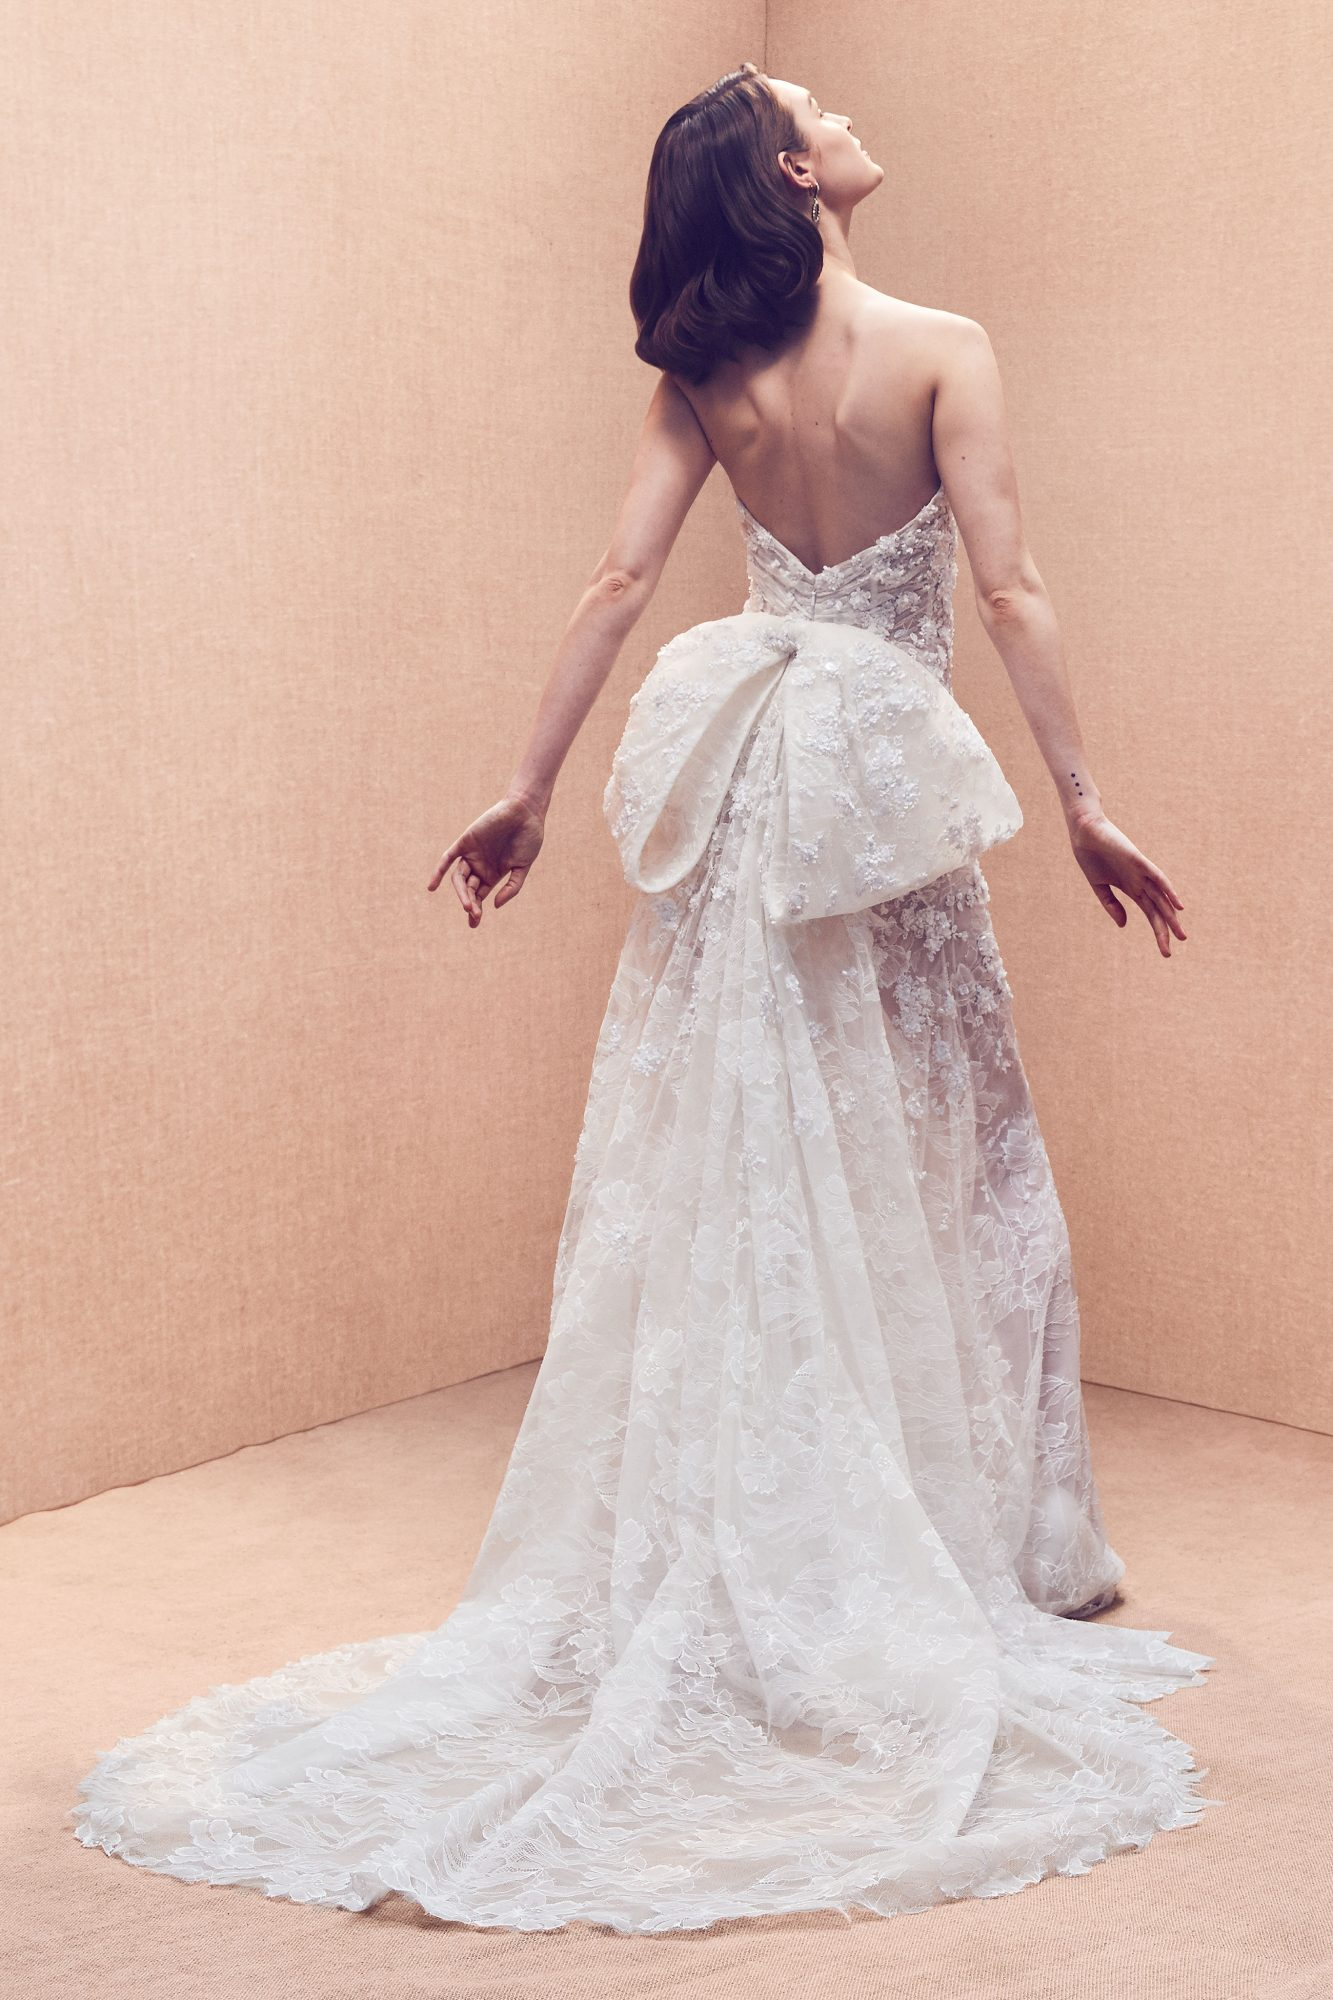 strapless open back large bow train lace floral applique glitter a-line wedding dress Oscar de la Renta Spring 2020